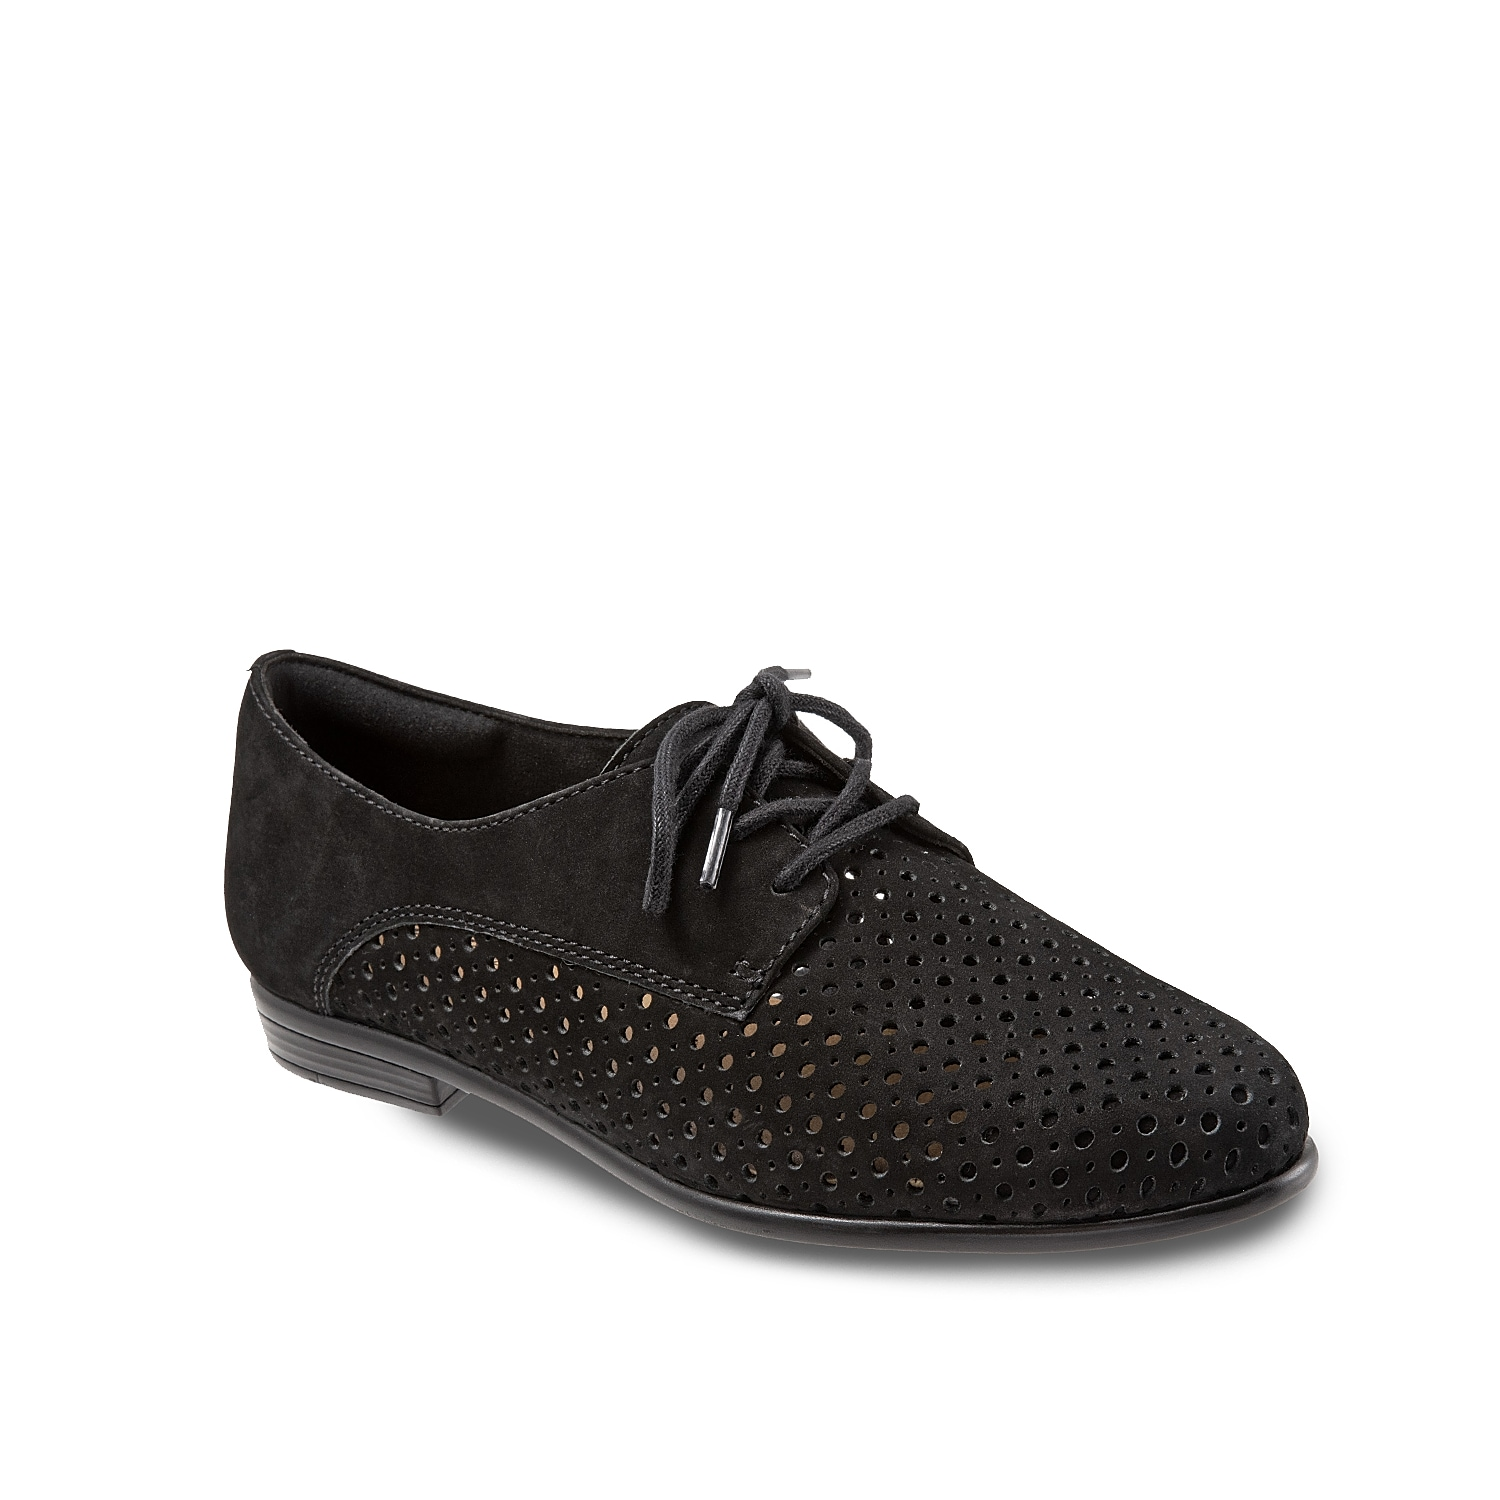 Stay classy while feeling comfortable with the Lizzie oxford from Trotters. A laser cut construction adds breathability while the memory foam footbed cushions every step!